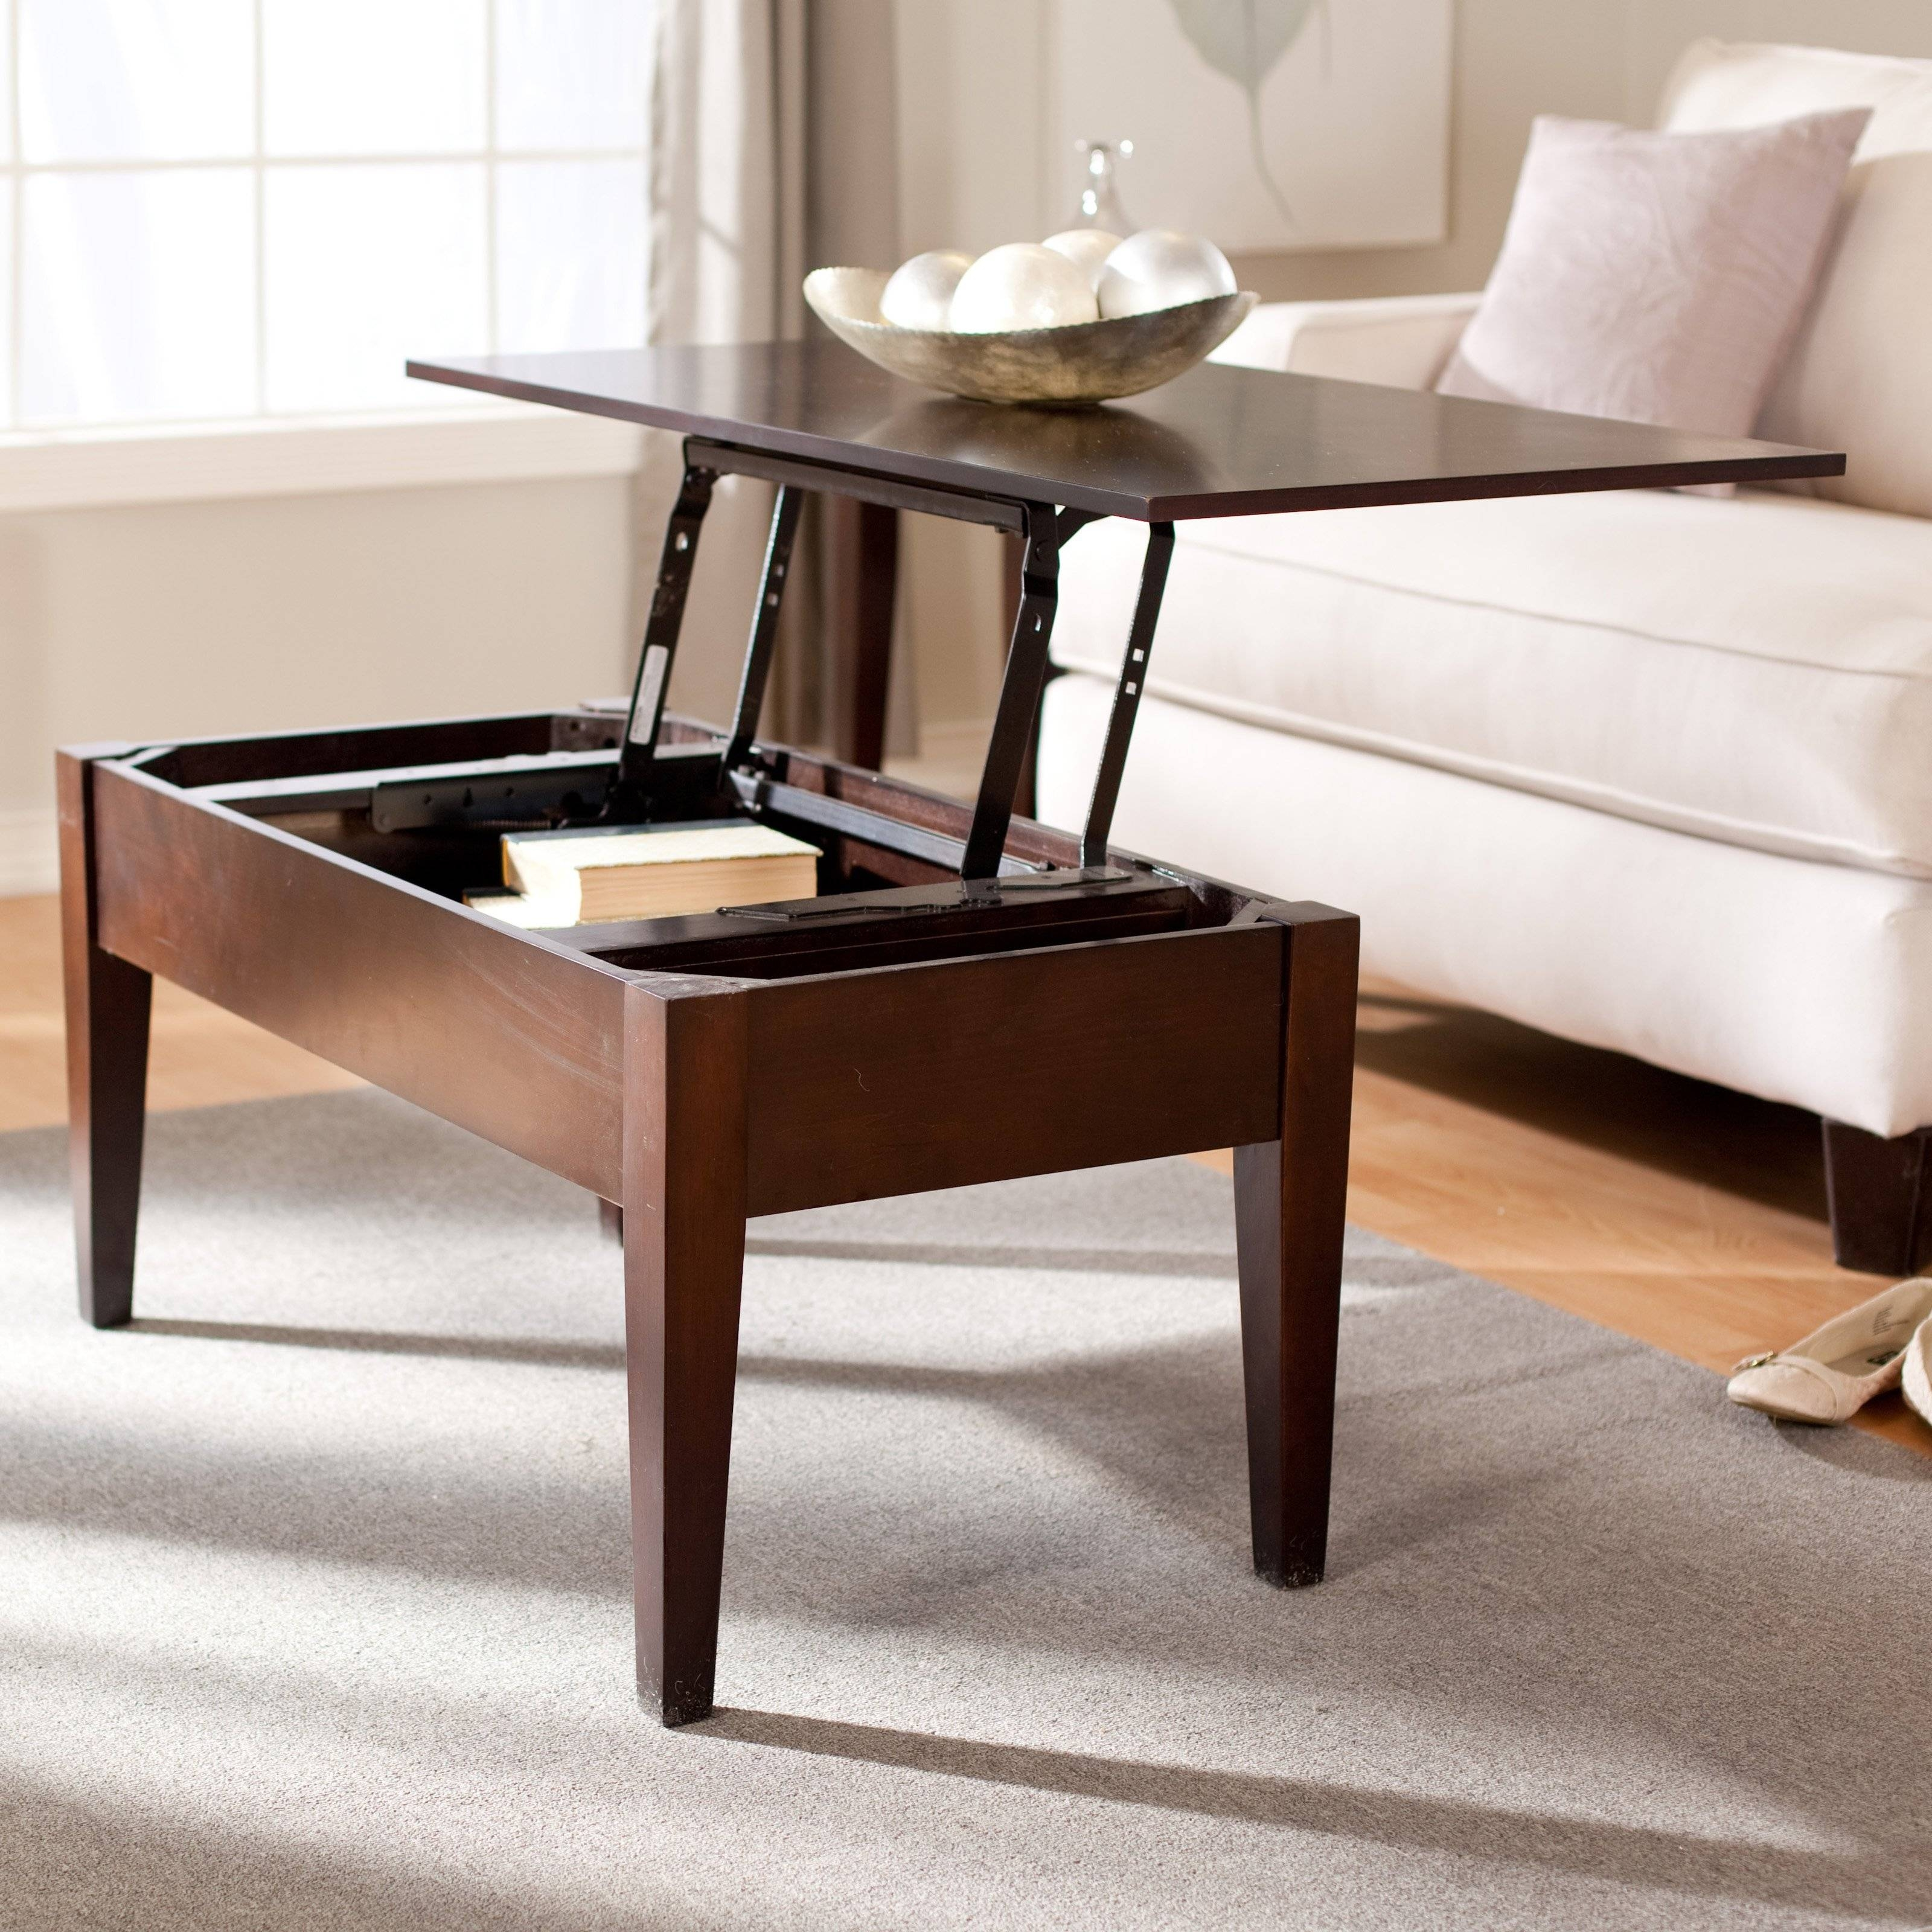 Turner Lift Top Coffee Table - Black | Hayneedle within Coffee Tables With Rising Top (Image 30 of 30)